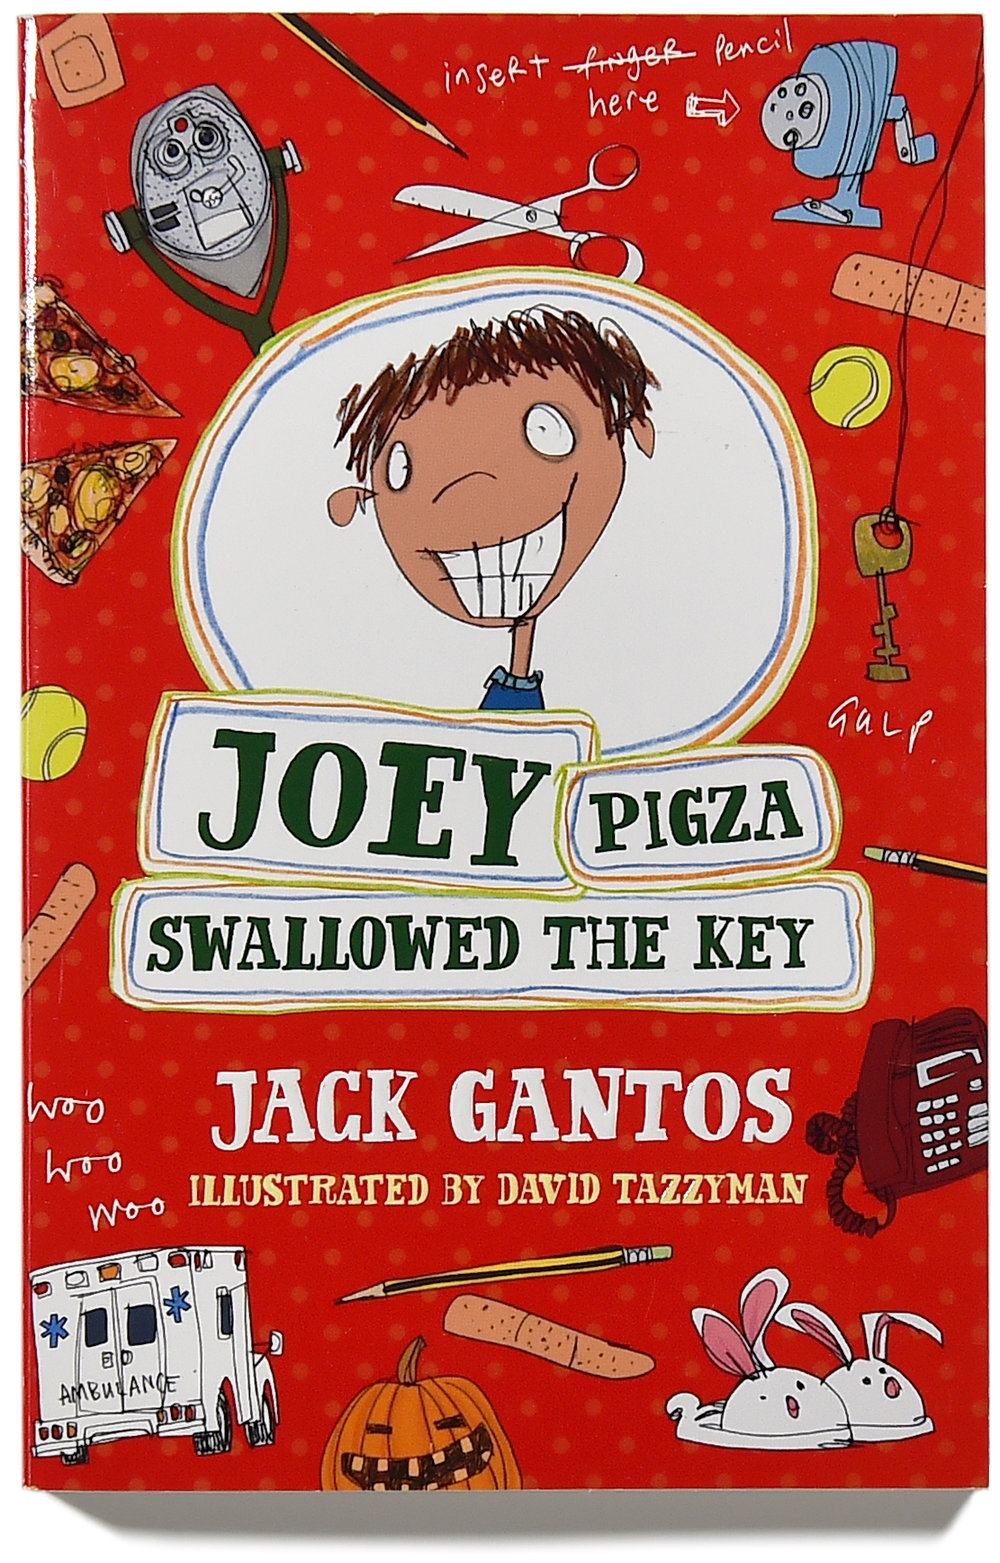 Joey Pigza series